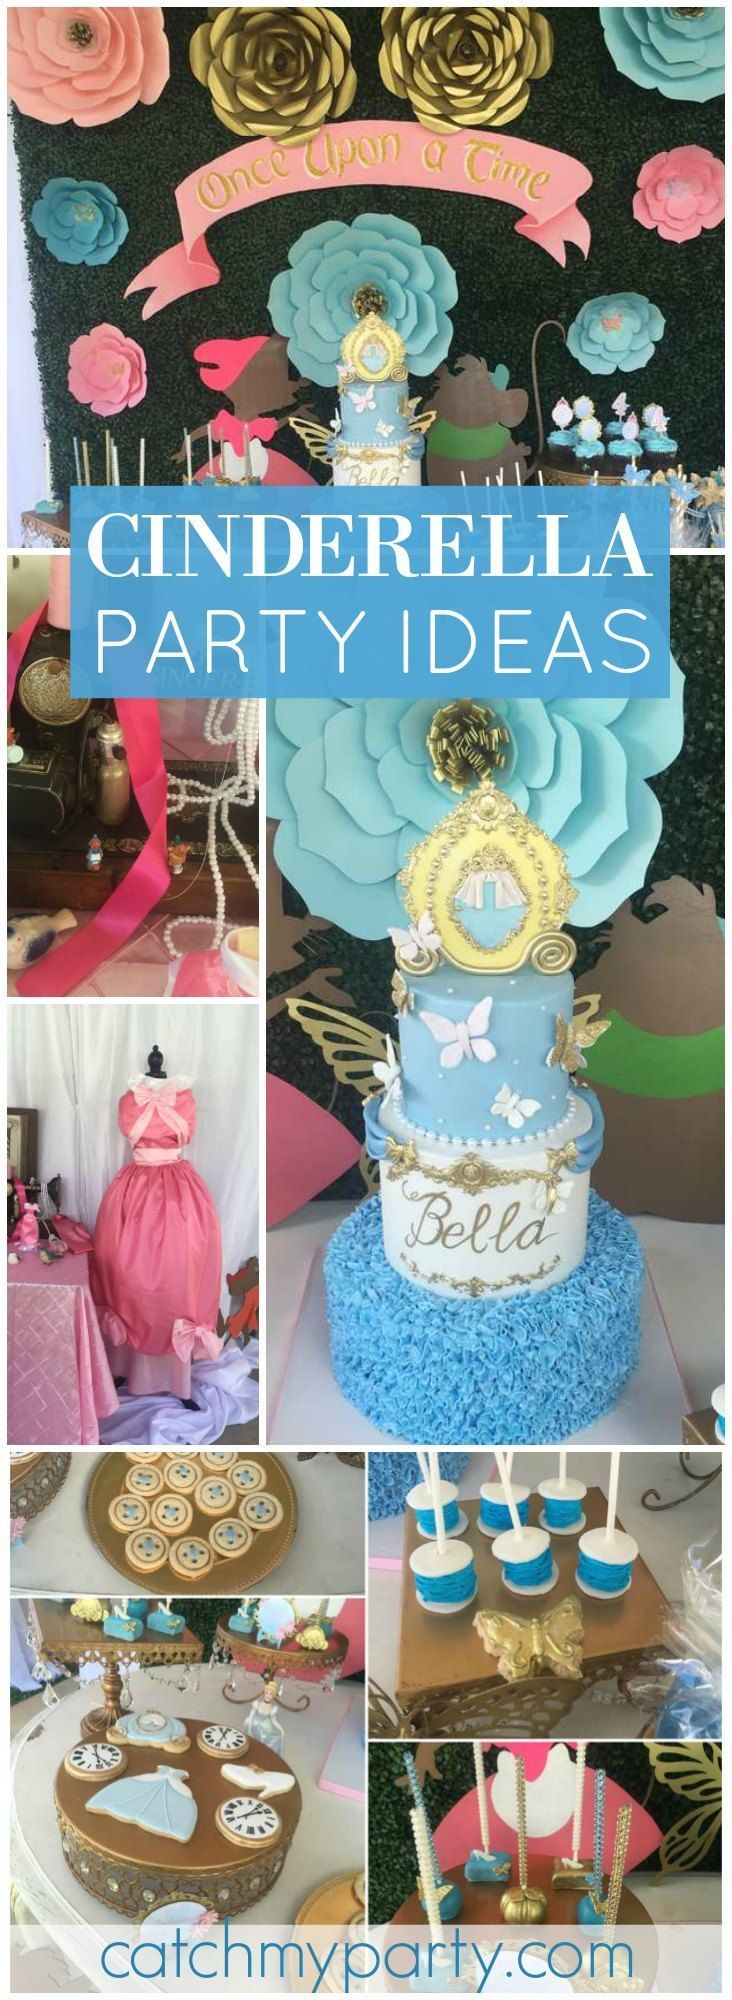 This lovely Cinderella birthday has excellent ideas for themed party foods! See more party ideas at http://CatchMyParty.com!